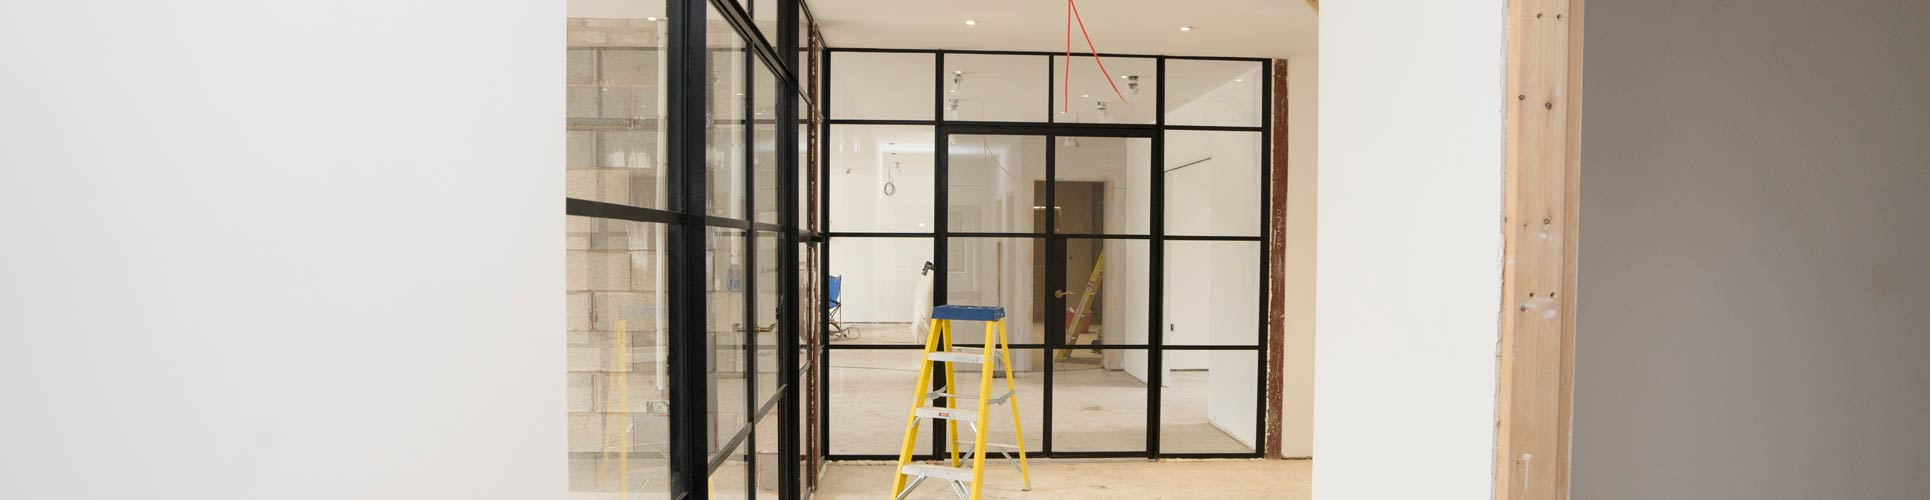 Crittall internal screen installed for one of our clients, finished in black.